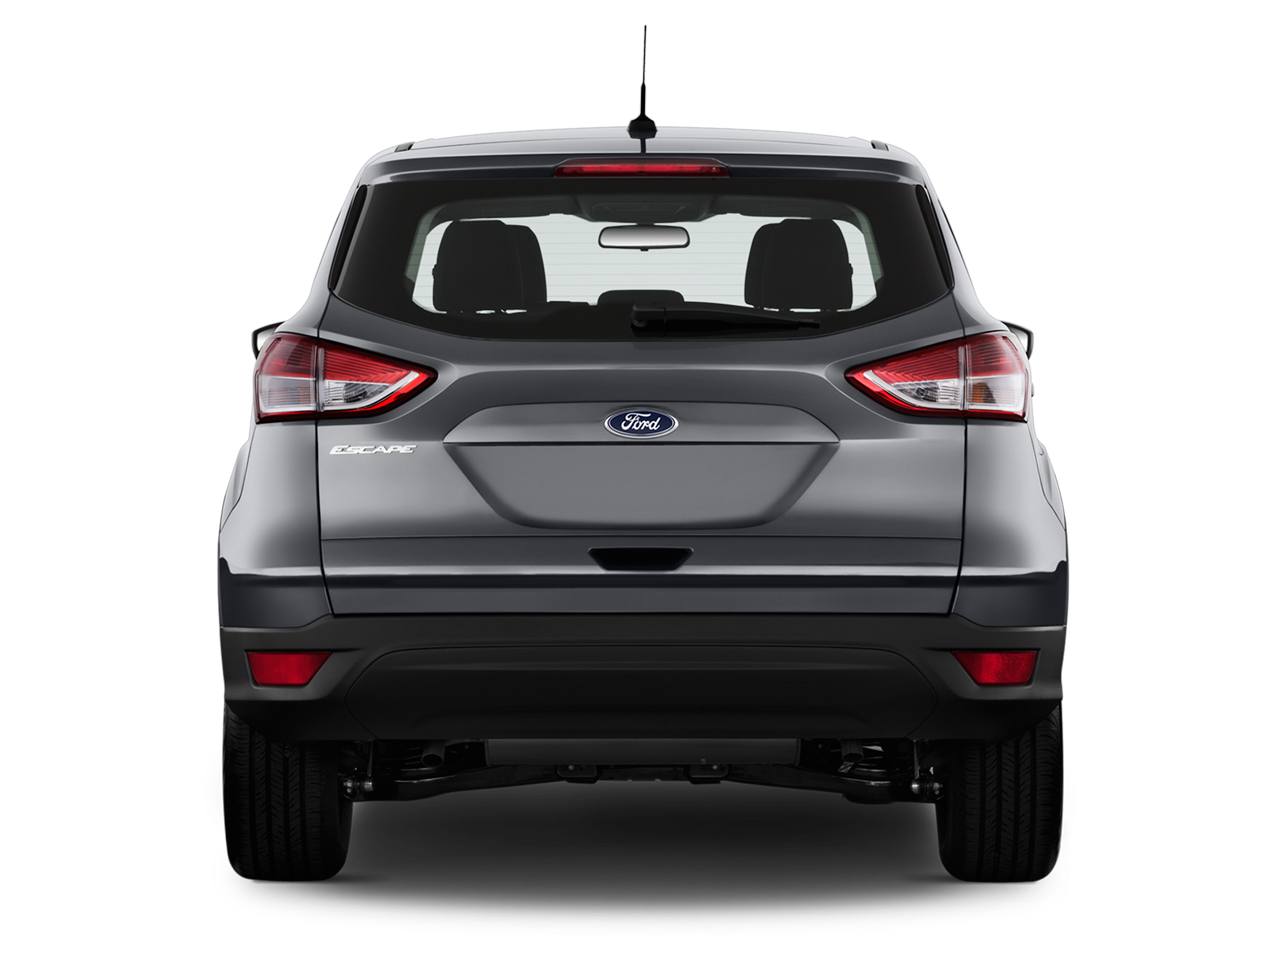 Used one owner 2015 ford escape titanium portsmouth nh portsmouth used car center